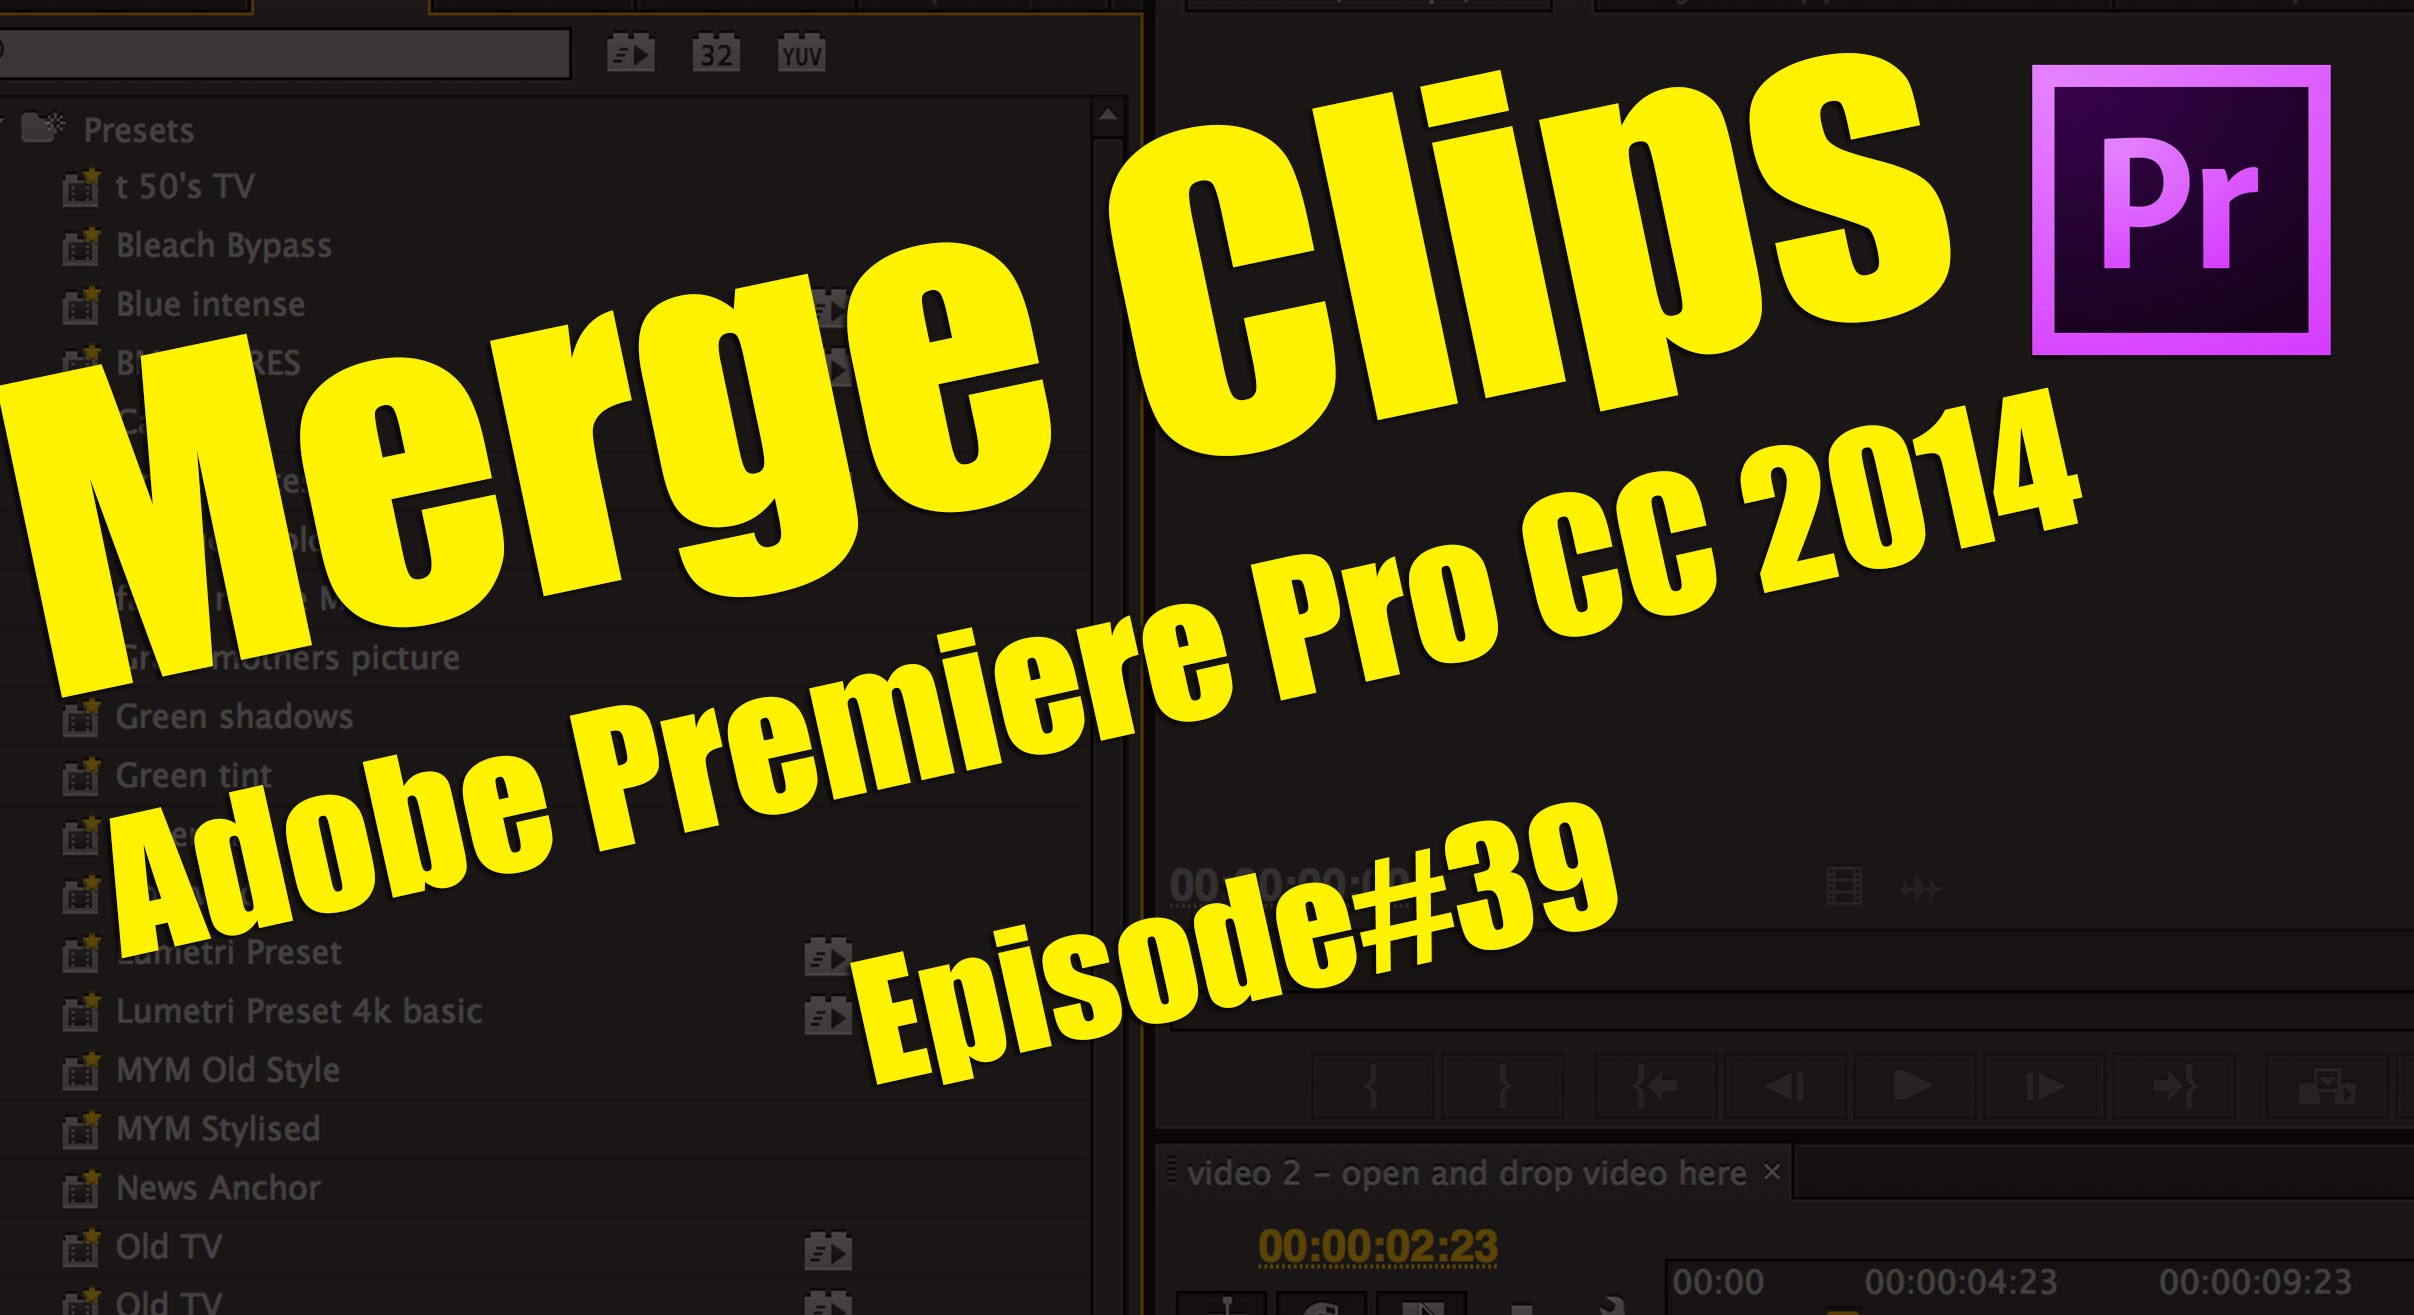 Merge Clip Function in Adobe Premiere Pro CC 2014 tutorial